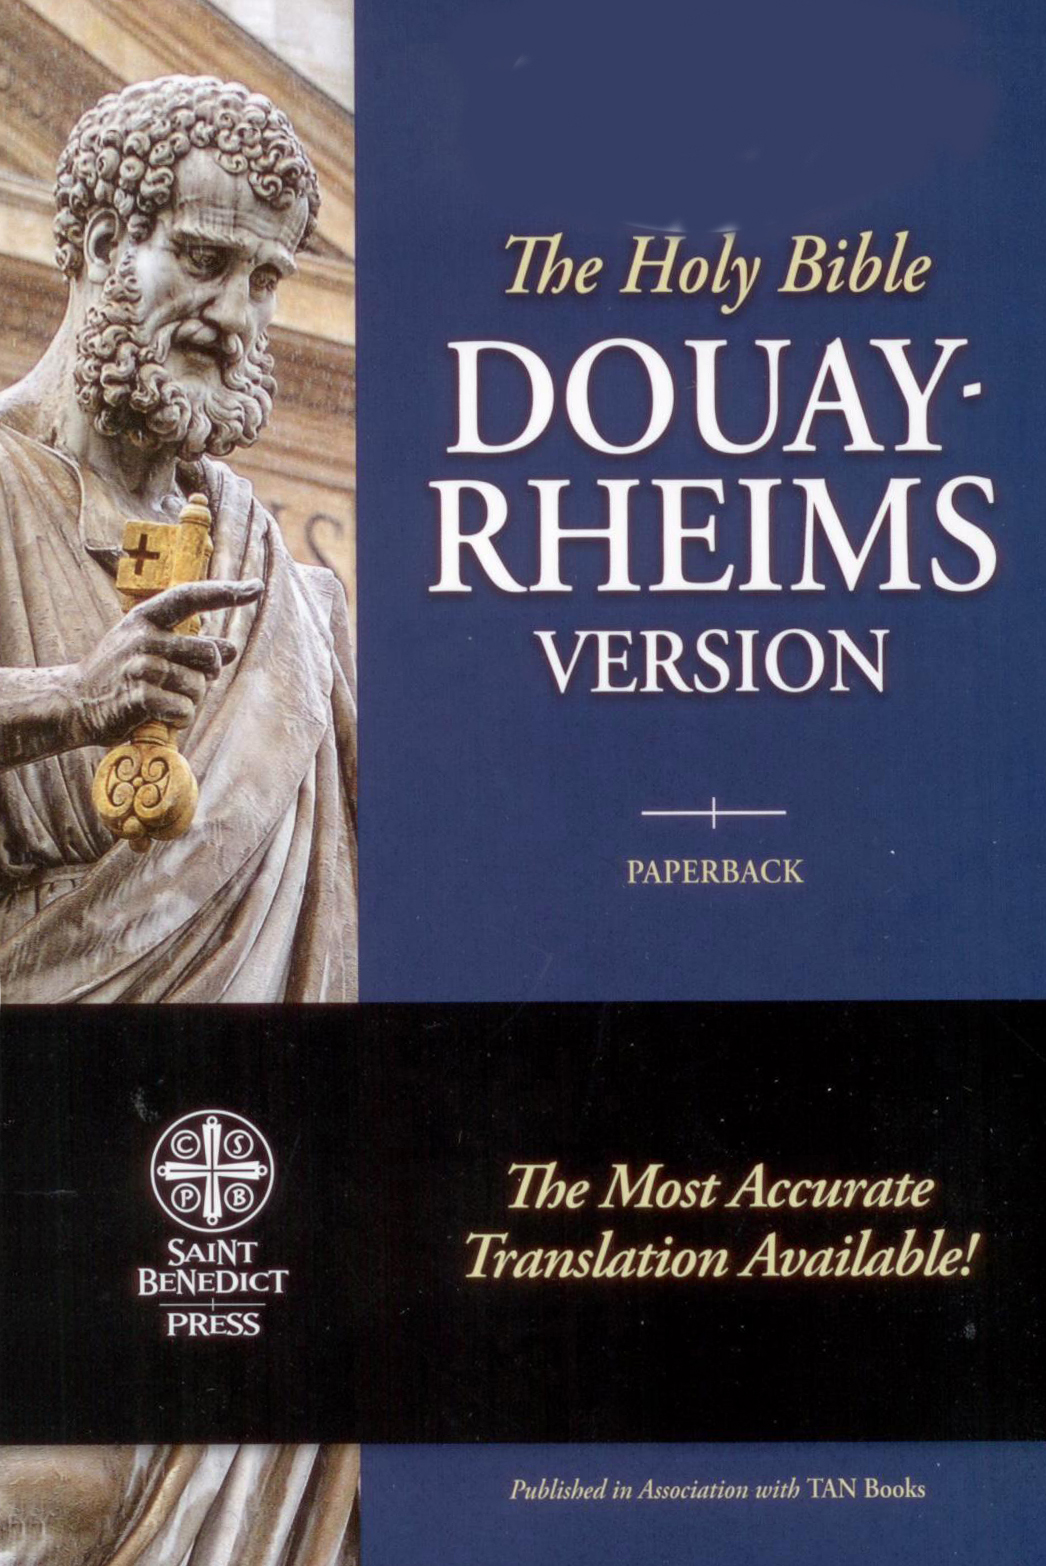 The Douay-Rheims Catholic Bible in Blue Paperback Cover SB2056